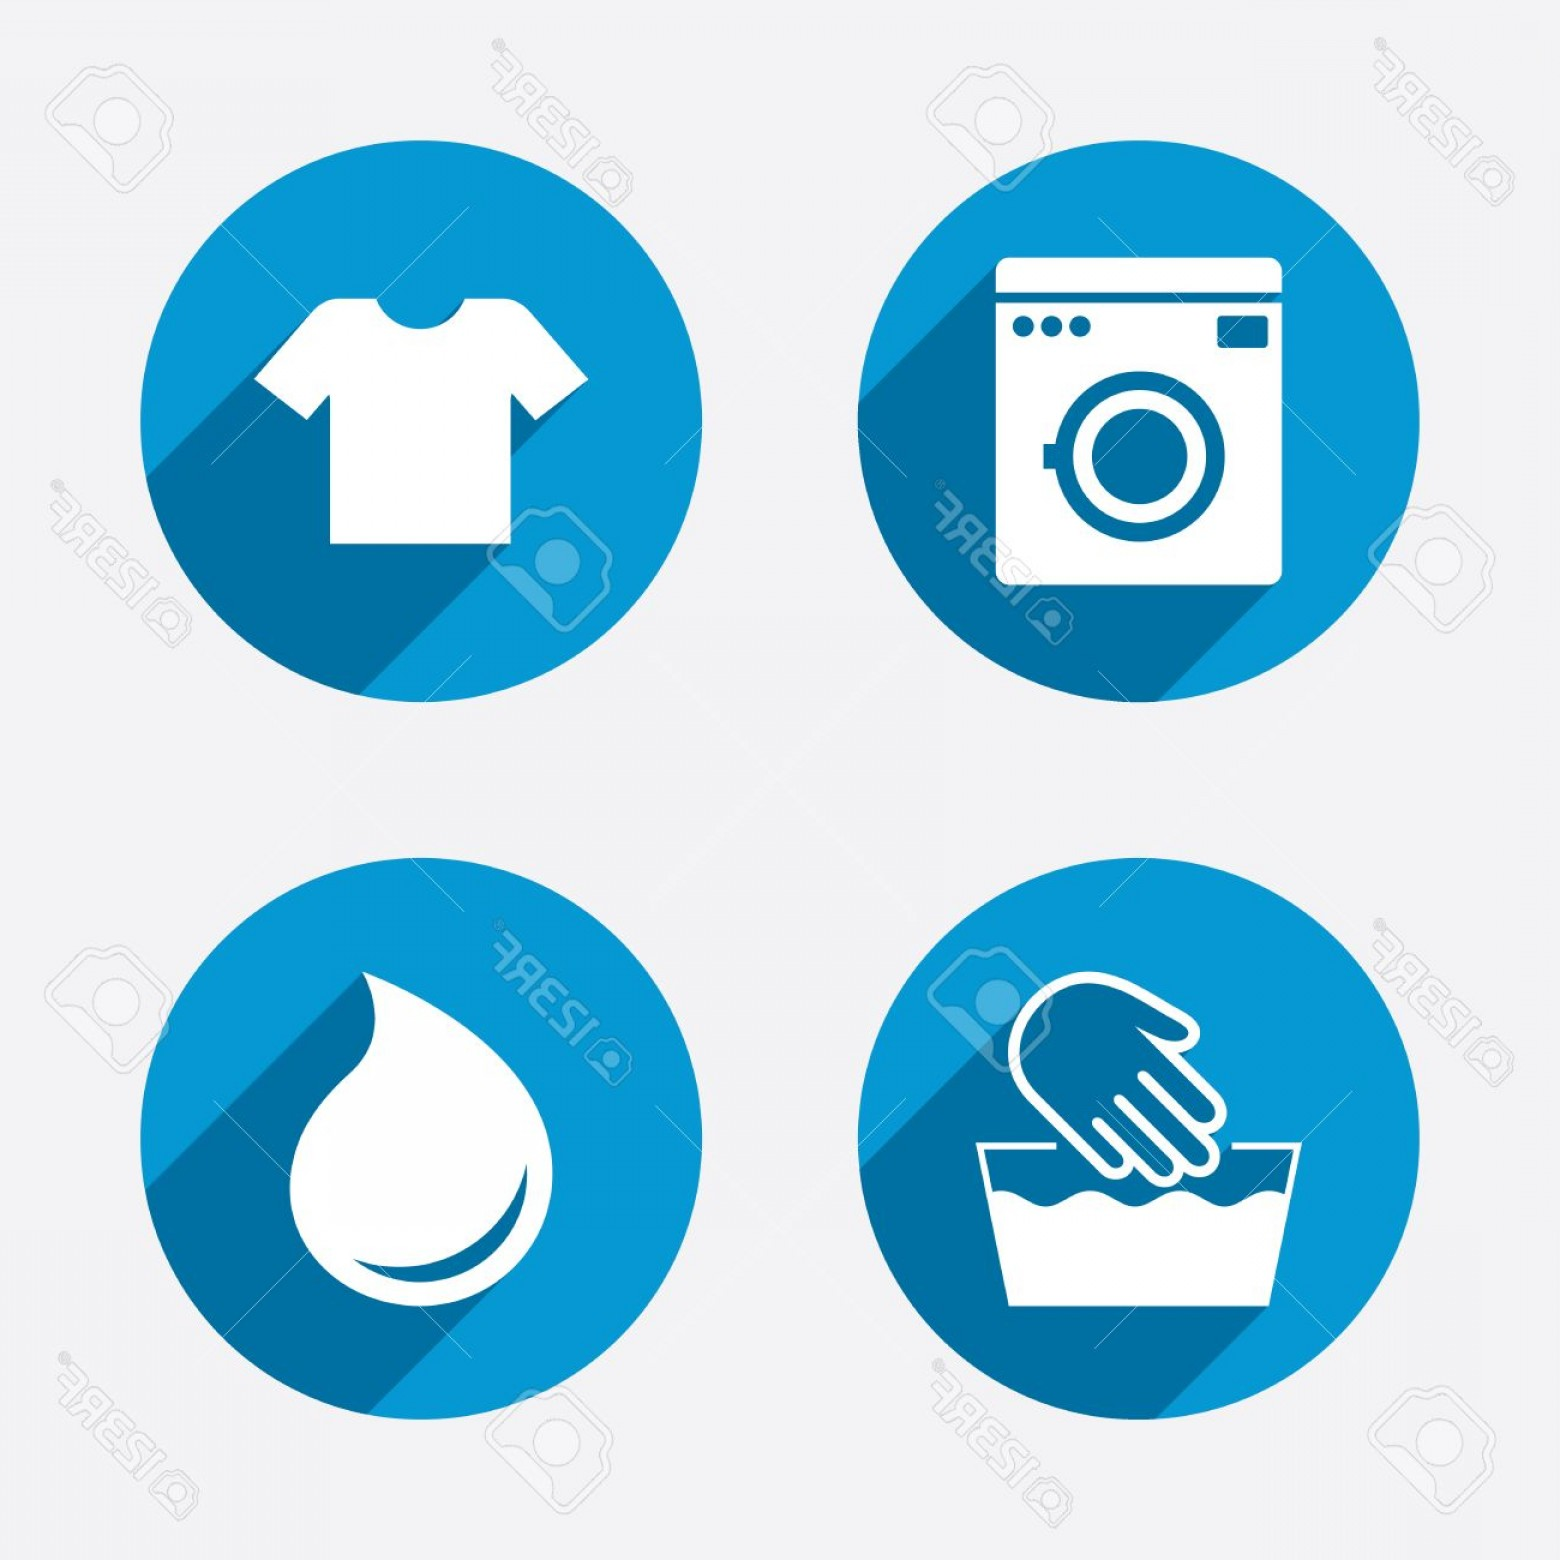 Clothes For Washing Vector: Photostock Vector Wash Machine Icon Hand Wash T Shirt Clothes Symbol Laundry Washhouse And Water Drop Signs Not Machin